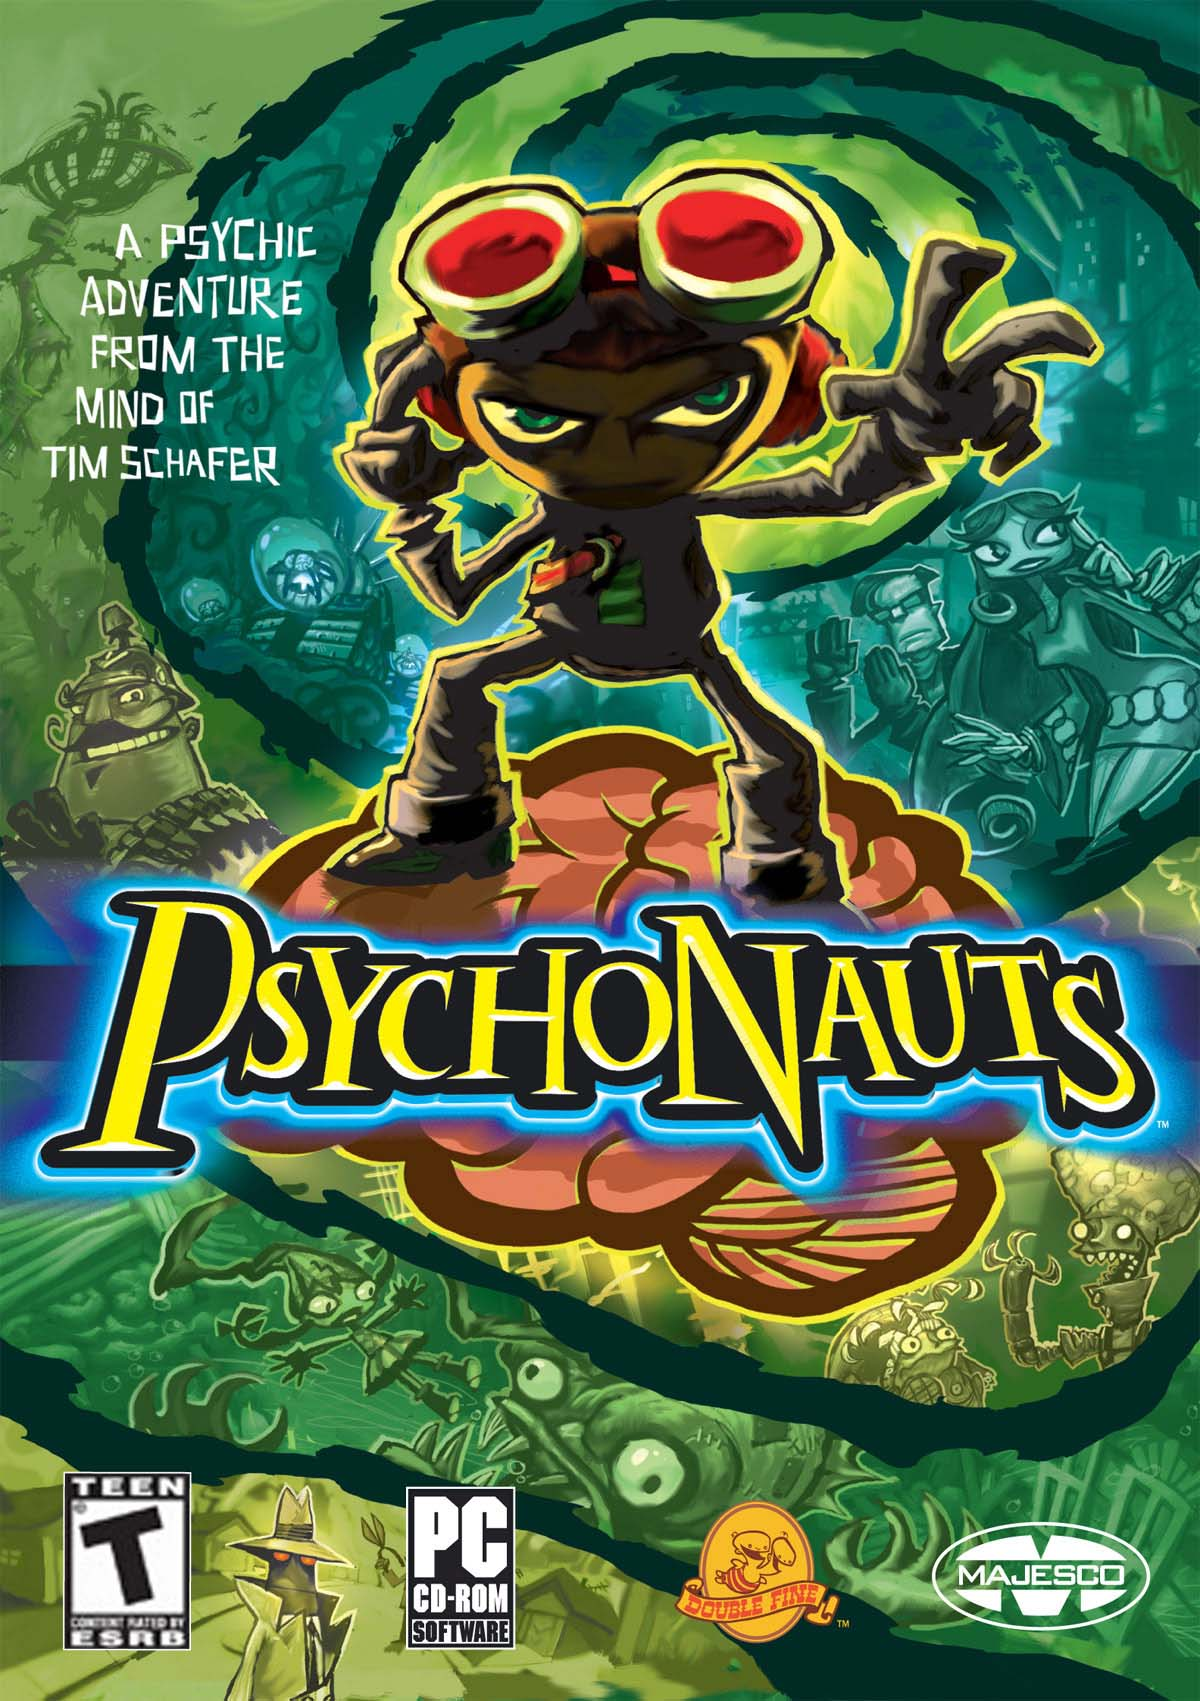 Fusion Fall Wallpaper Hd Psychonauts Cover Art The International House Of Mojo